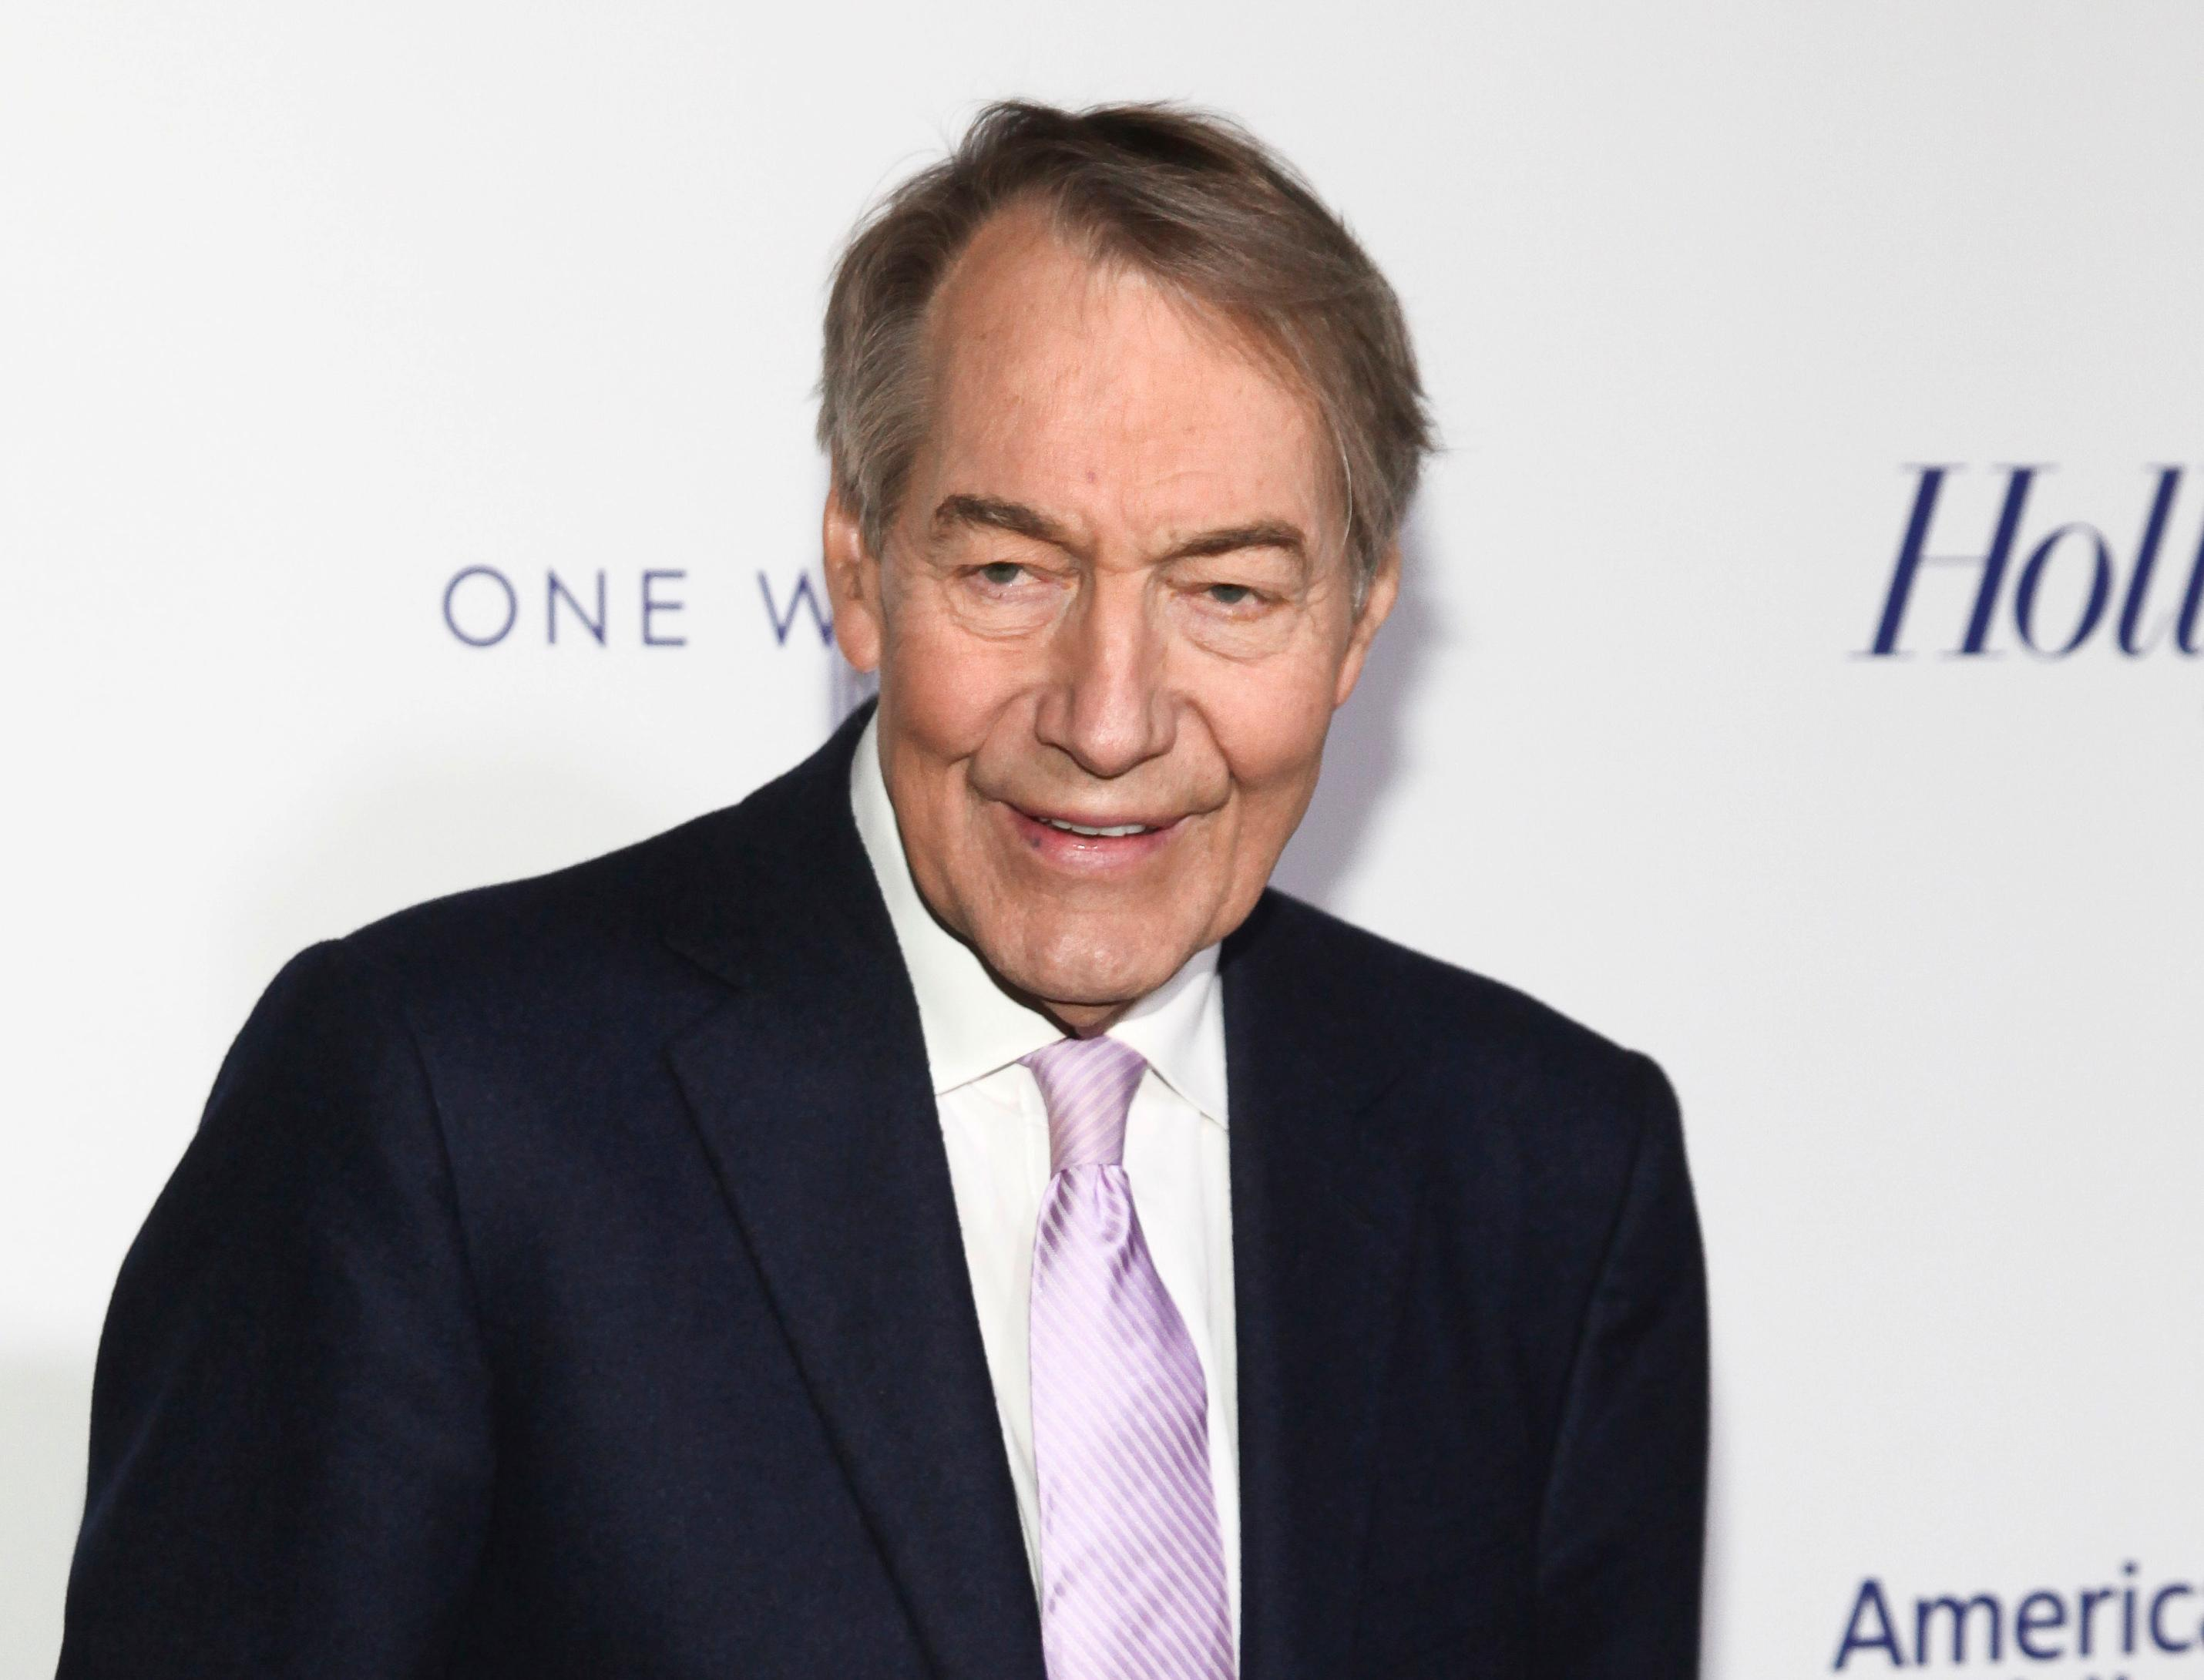 FILE - In this April 13, 2017 file photo, Charlie Rose attends The Hollywood Reporter's 35 Most Powerful People in Media party in New York. (Photo by Andy Kropa/Invision/AP, File)